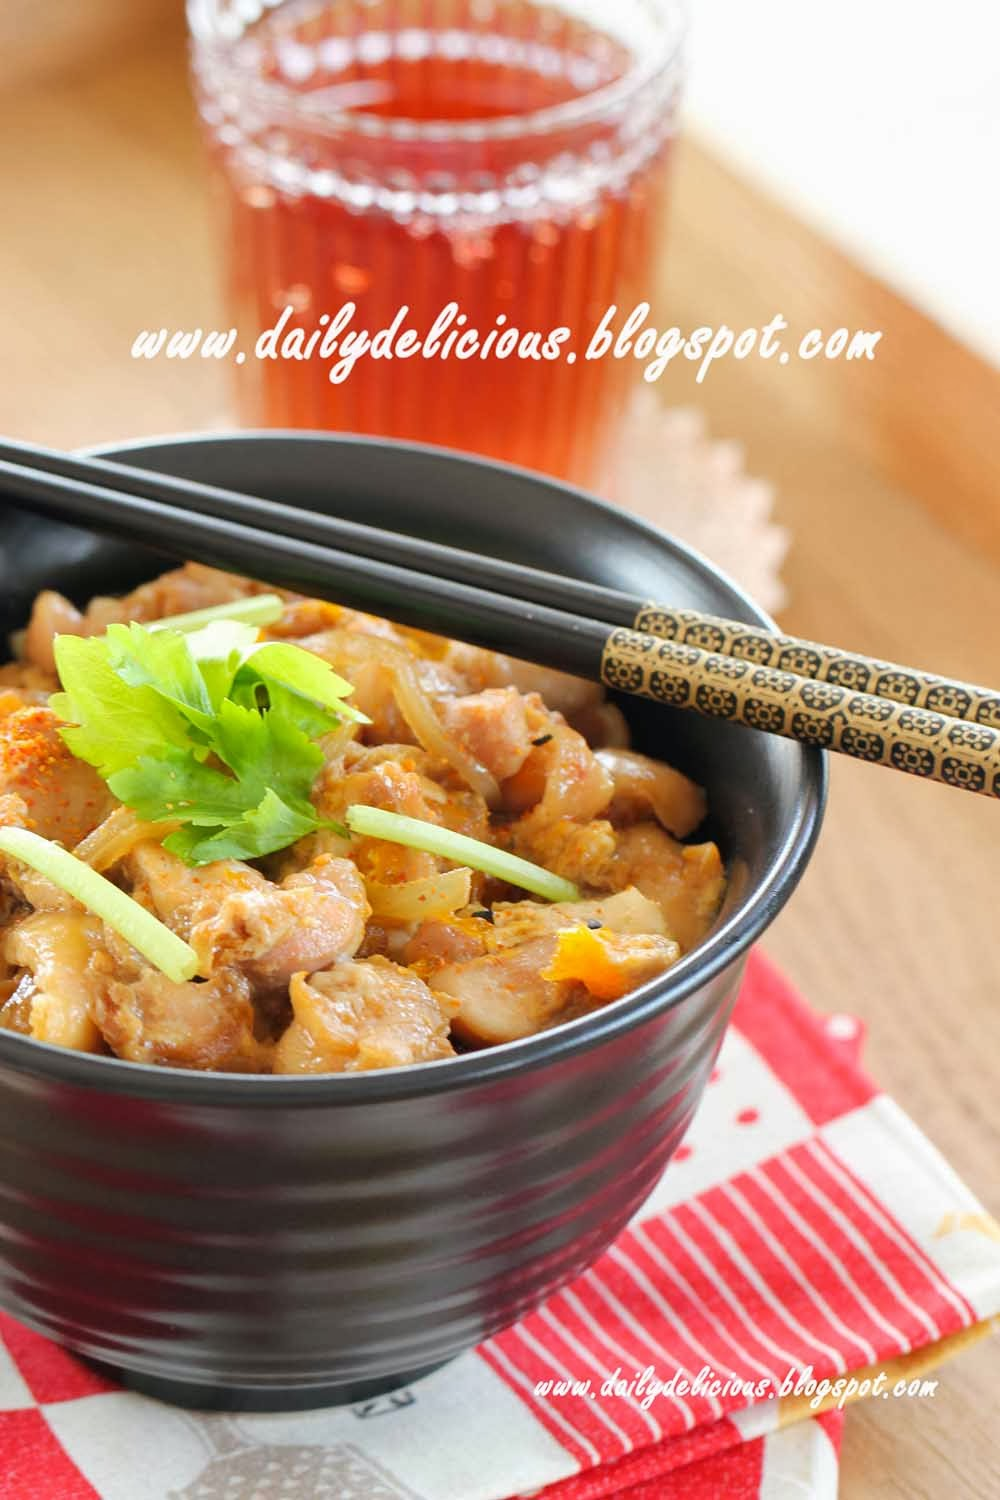 ... cooking: Microwave Oyakodon, Chicken and egg rice bowl (親子丼